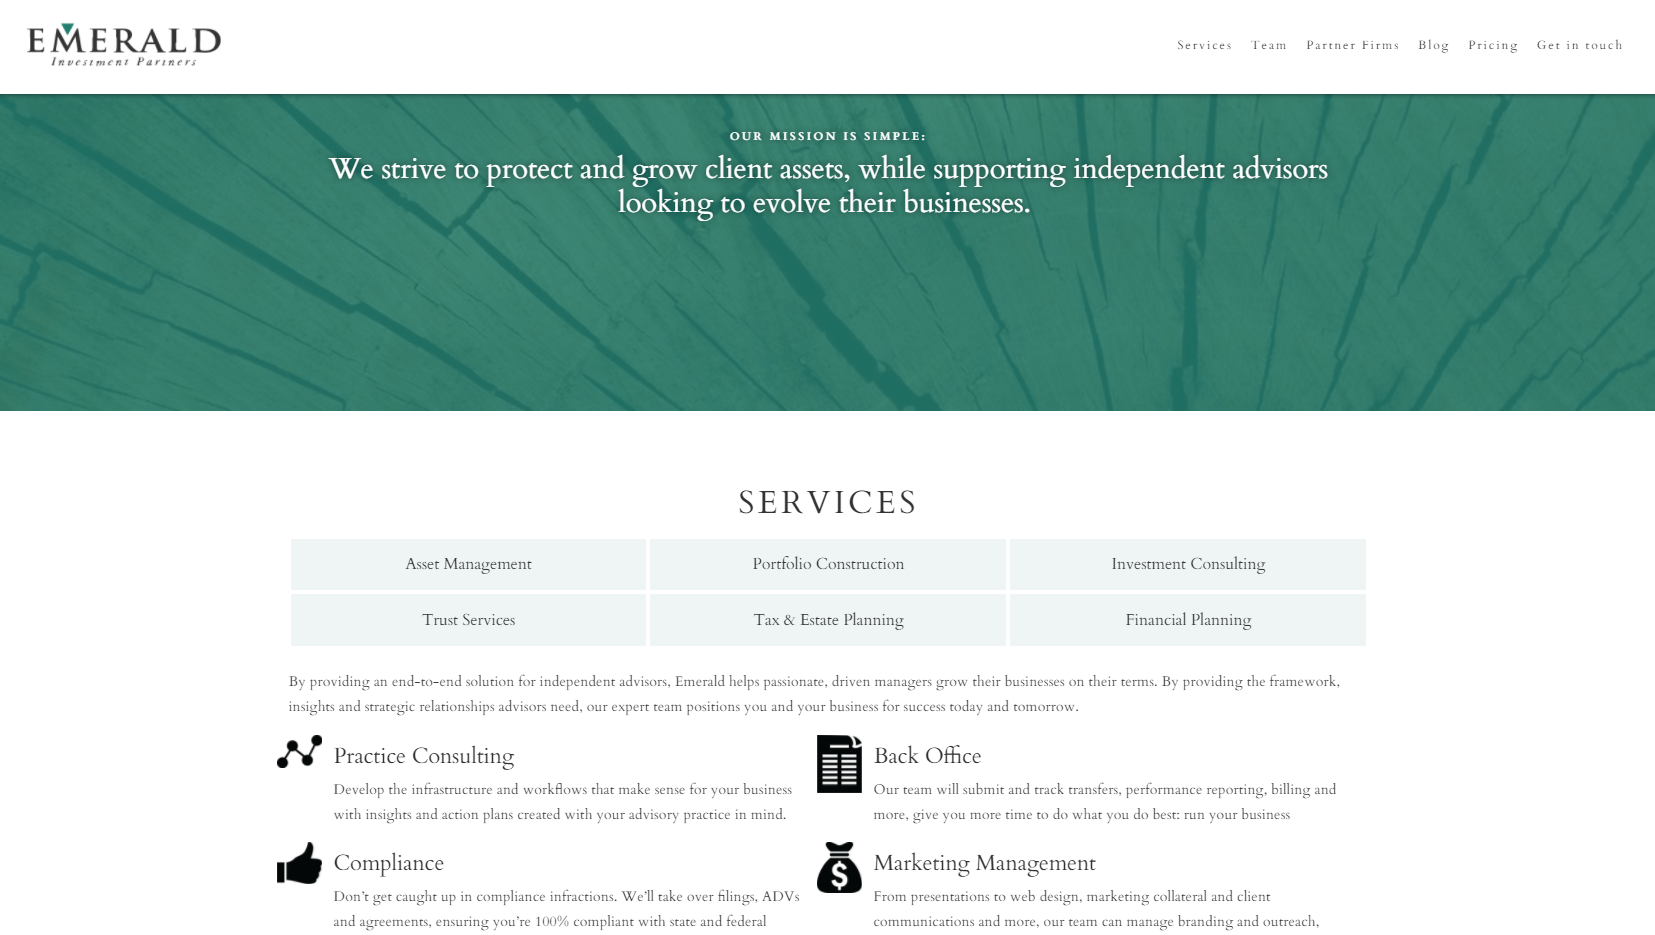 emerald investment partners financial advisor website